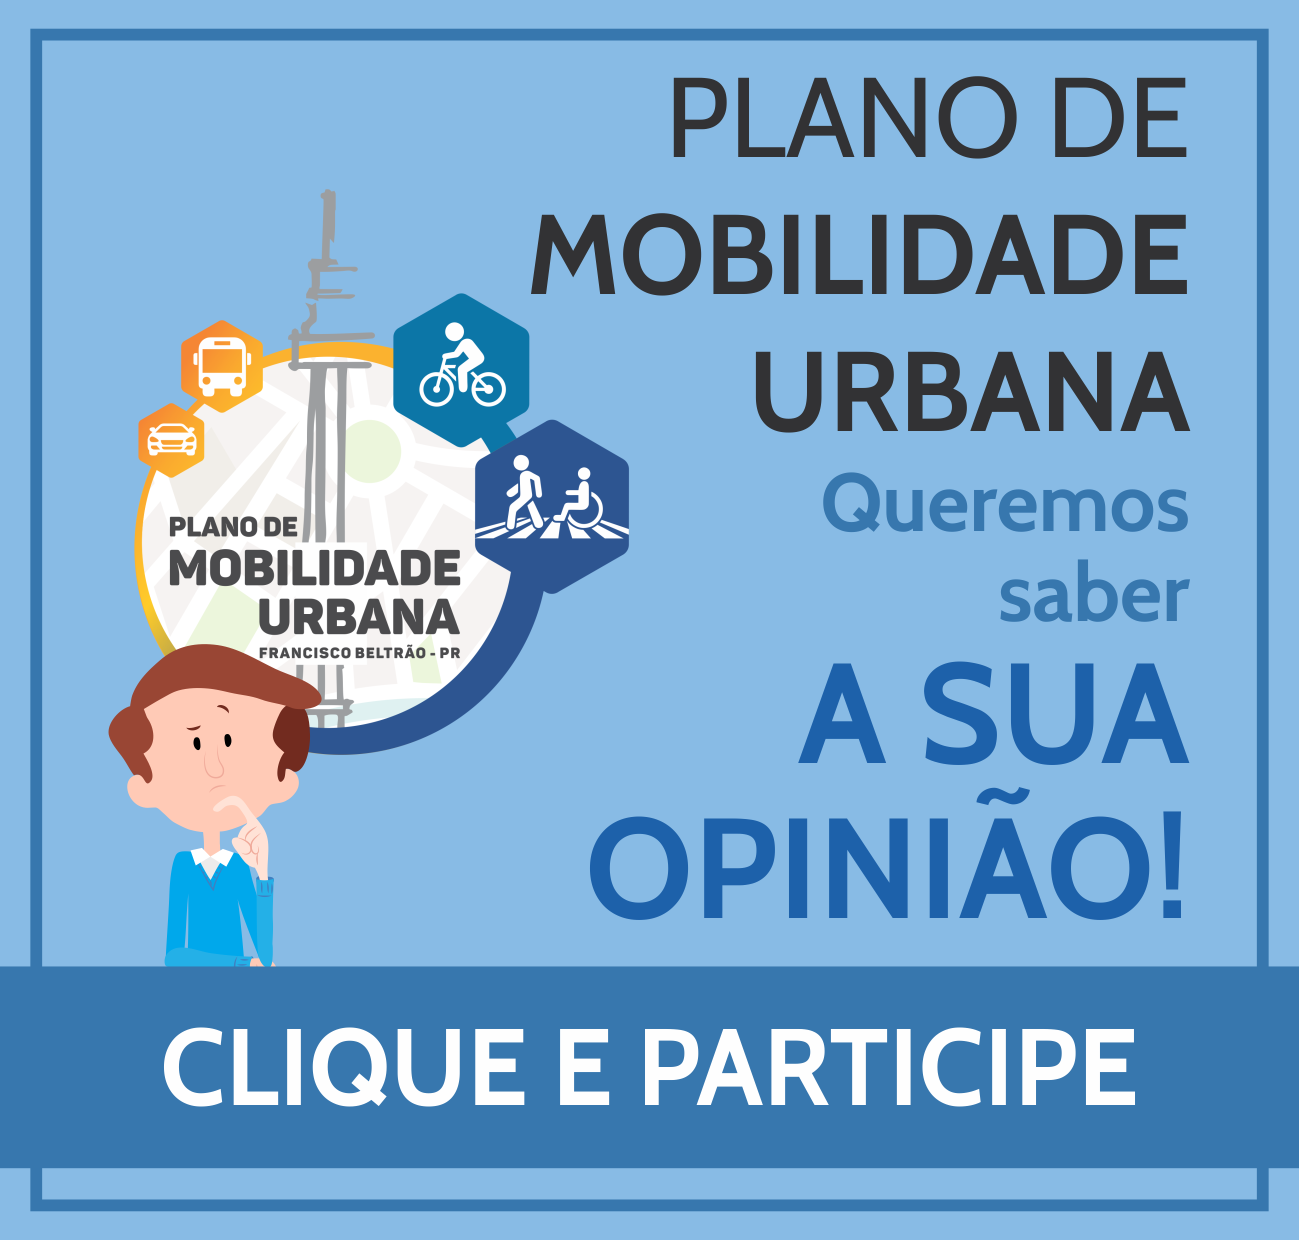 PLANO DE MOBILIDADE URBANA - FORMULÁRIO